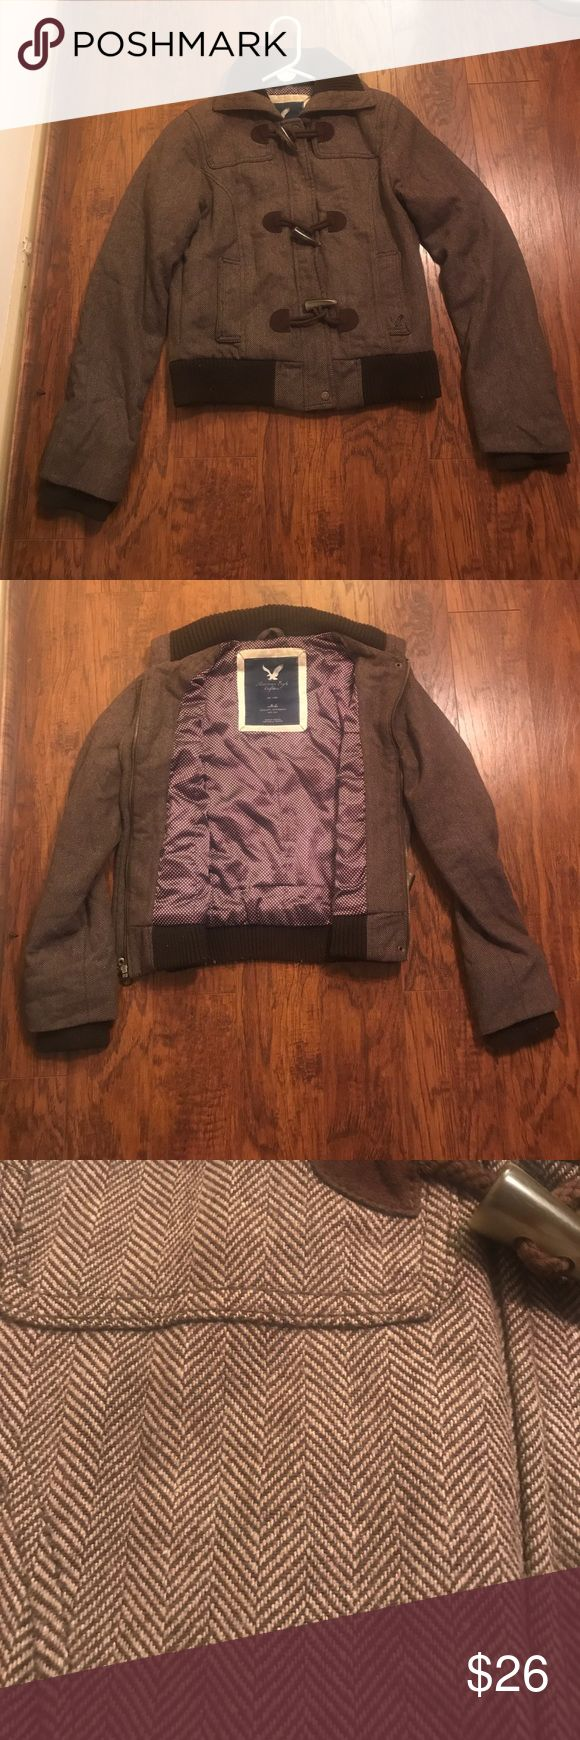 American Eagle Outfitters Brown Jacket Size Medium American Eagle Brown Jacket Size Medium! Jacket has a collar, pockets, zipper down the front with buttons, small chevron printing all over jacket. Great for fall or winter!! American Eagle Outfitters Jackets & Coats Utility Jackets